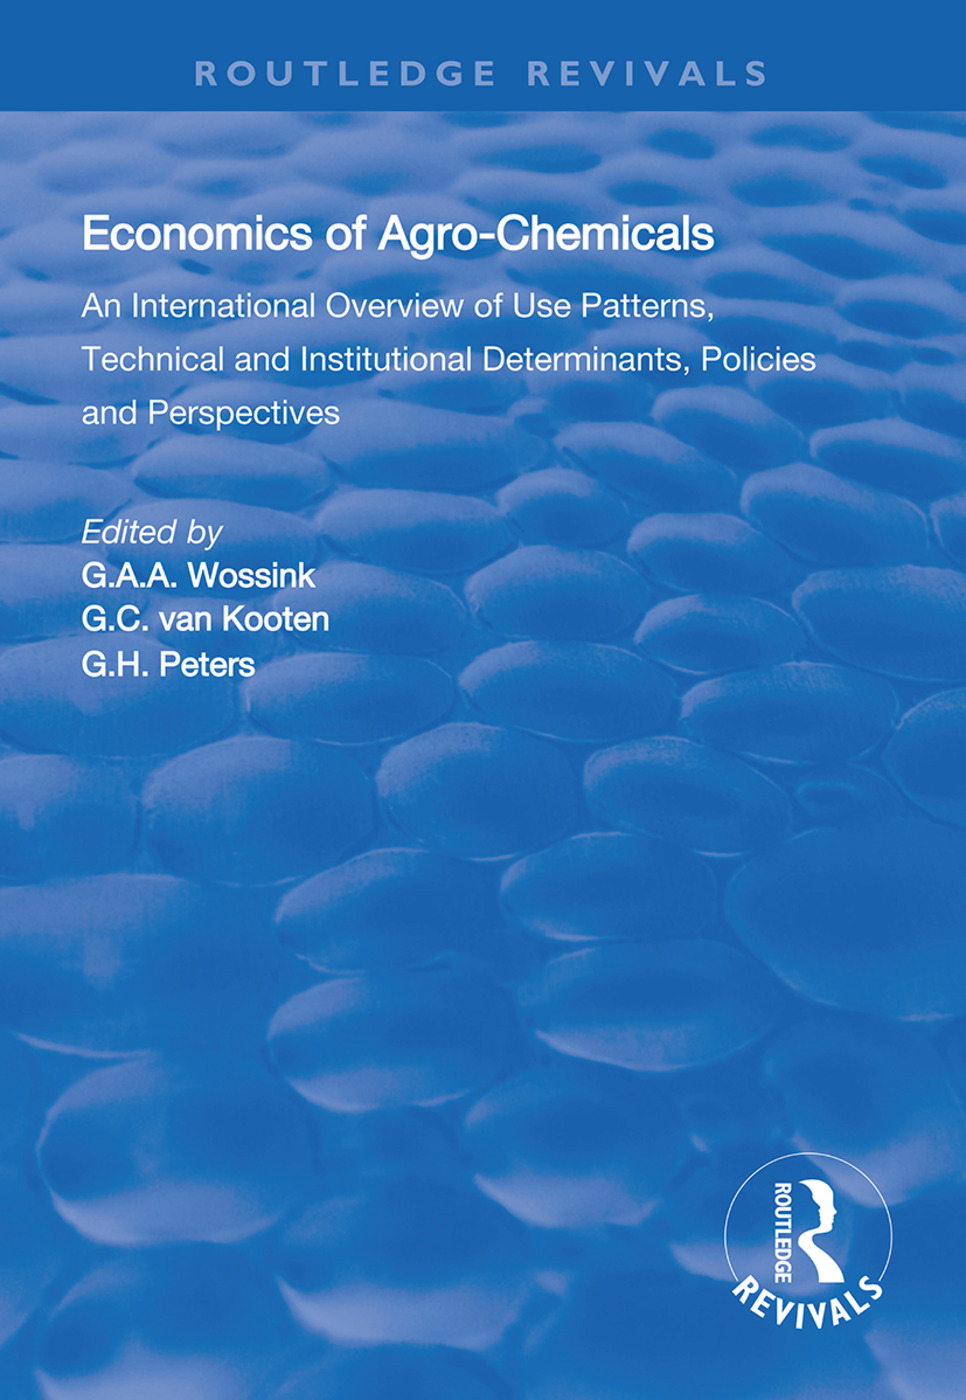 The Economics of Agro-Chemicals: An International Overview of Use Patterns, Technical and Institutional Determinants, Policies and Perspectives, 1st Edition (Hardback) book cover